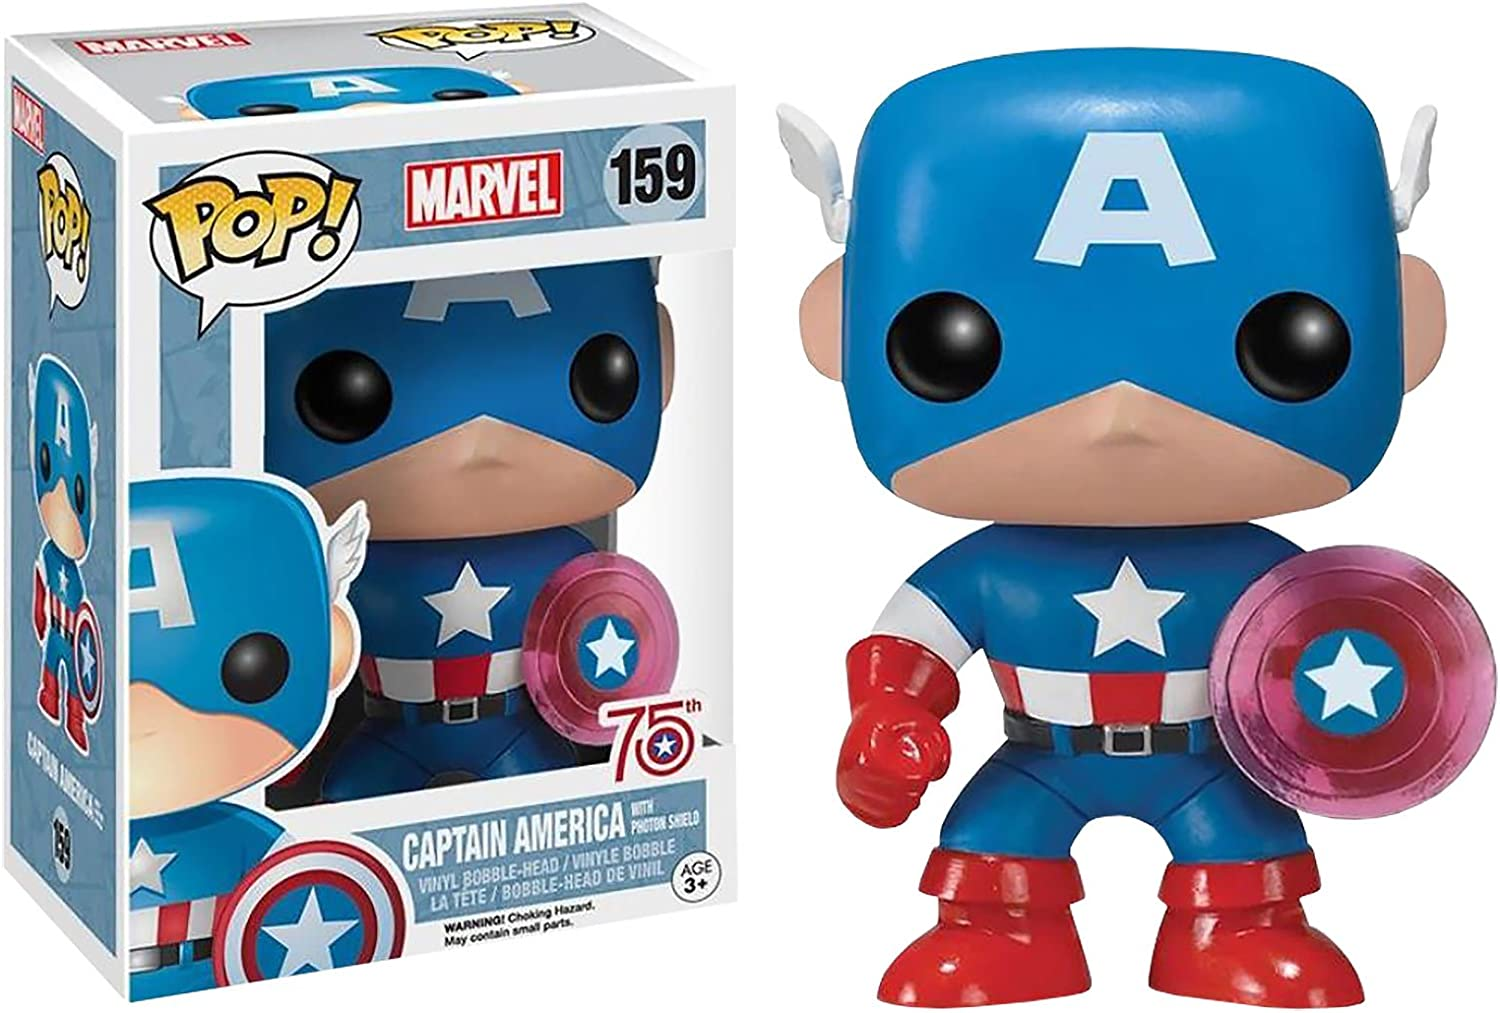 Funko 024964 Pop Marvel: Capitán América con Photon Shield 75th Anniversary Limited 159 Vinilo de Bobble Head